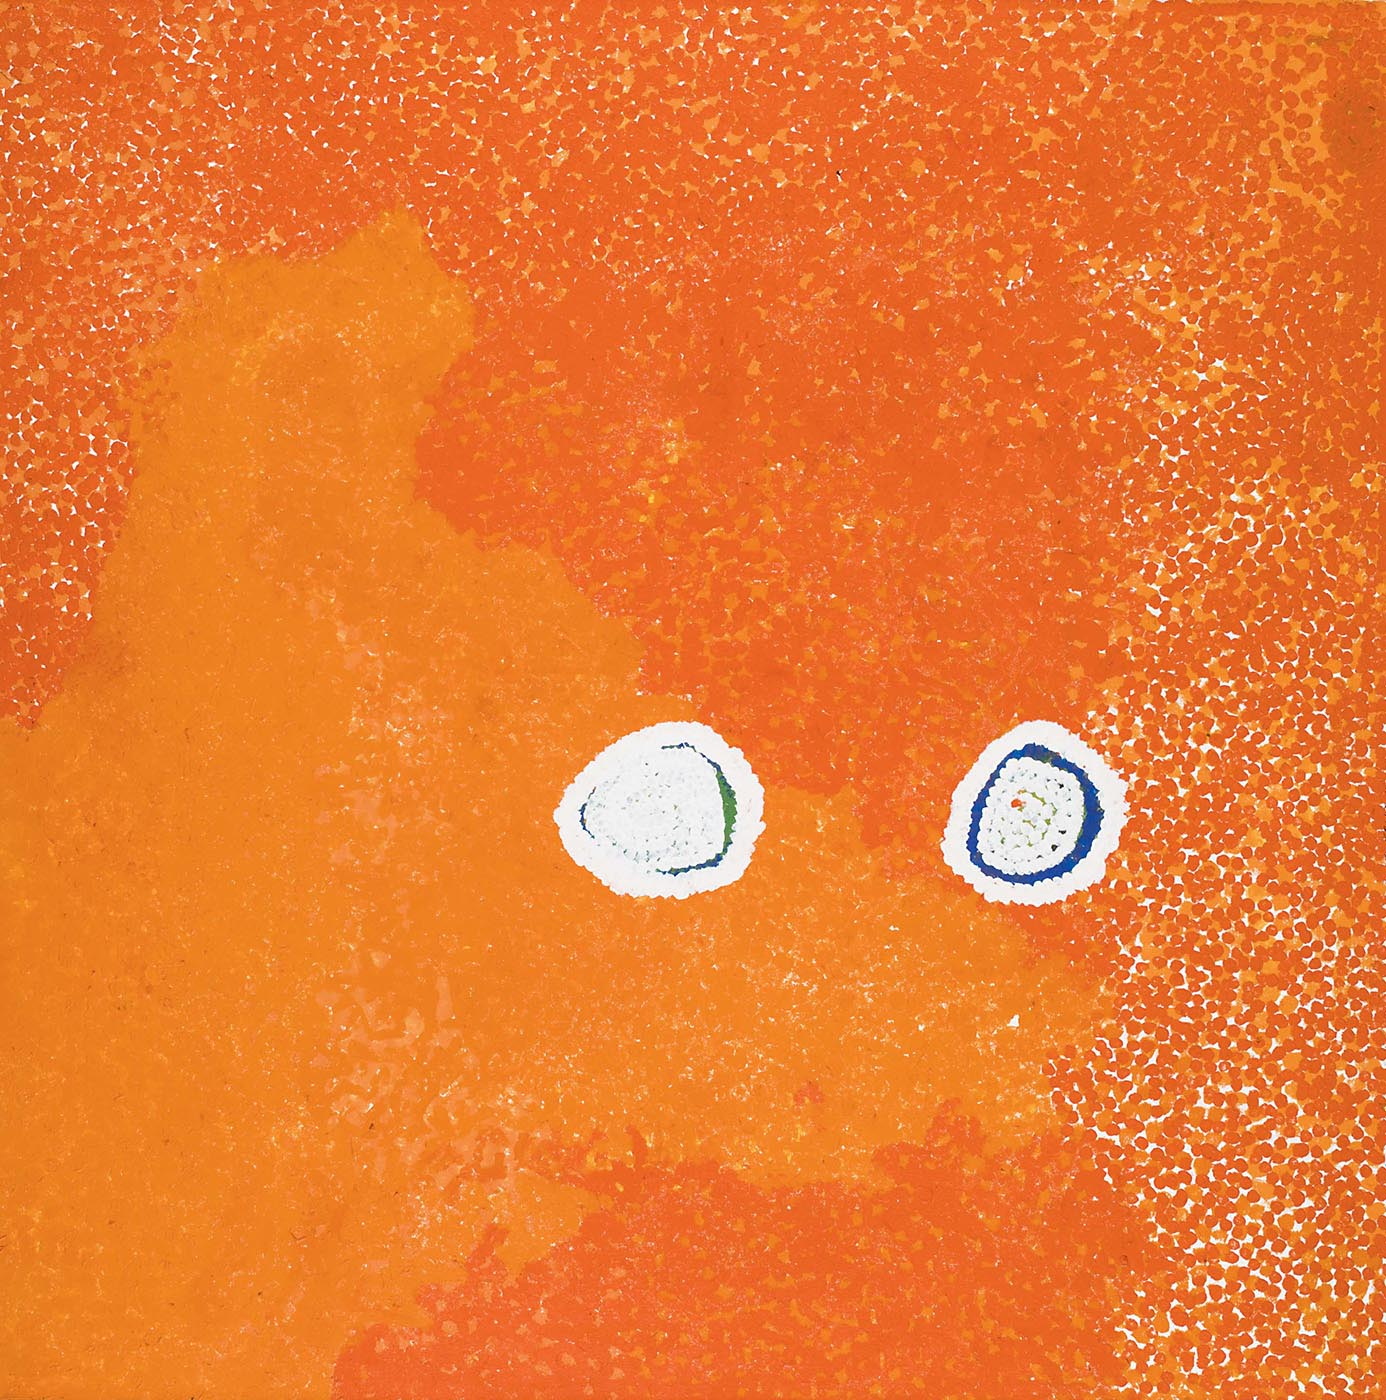 An orange toned textured painting on canvas with two white edged ovals in a horizontal line. The background is dark orange dotted in the upper right corner and lighter in lower left. The two ovals have a blue green background edged with white dots, with a central dotted white section leaving a very thin section of the blue showing.